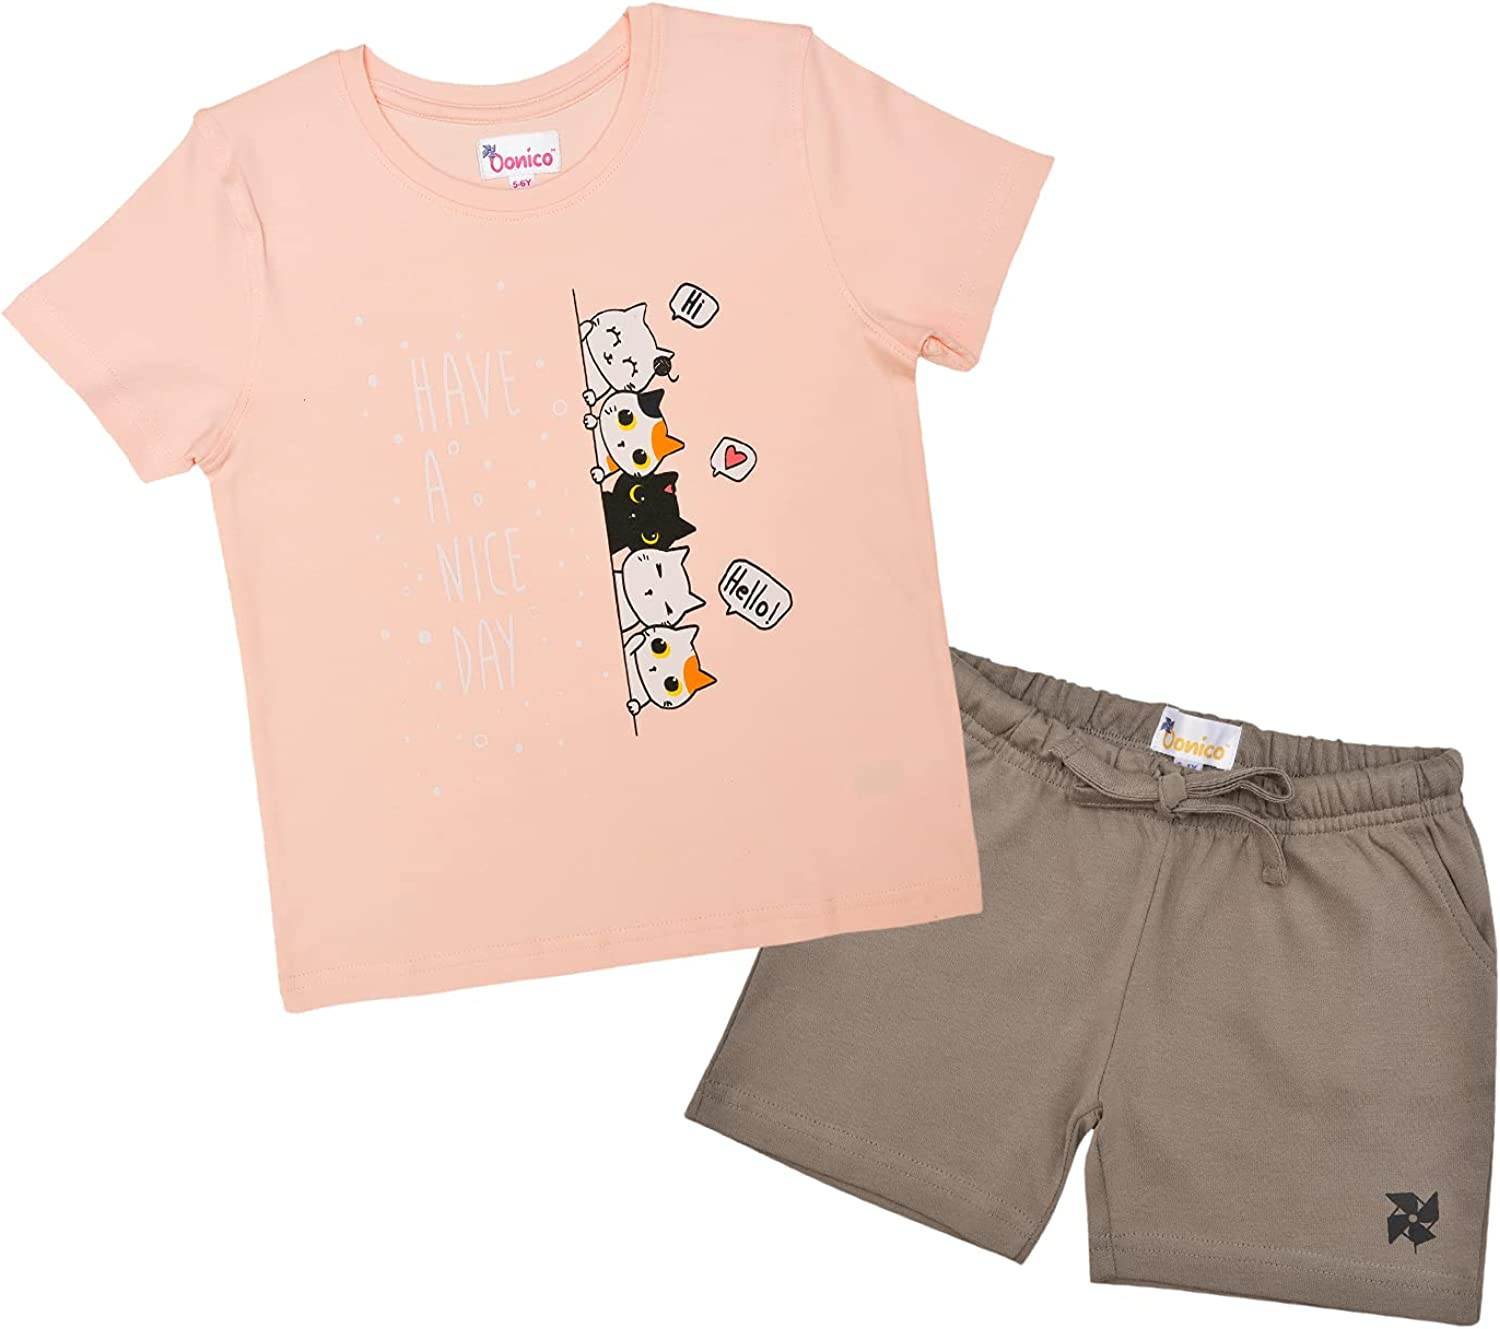 Oonico Kids Brown Unisex Shorts with Baby Pink Kitten T Shirt Set Combo